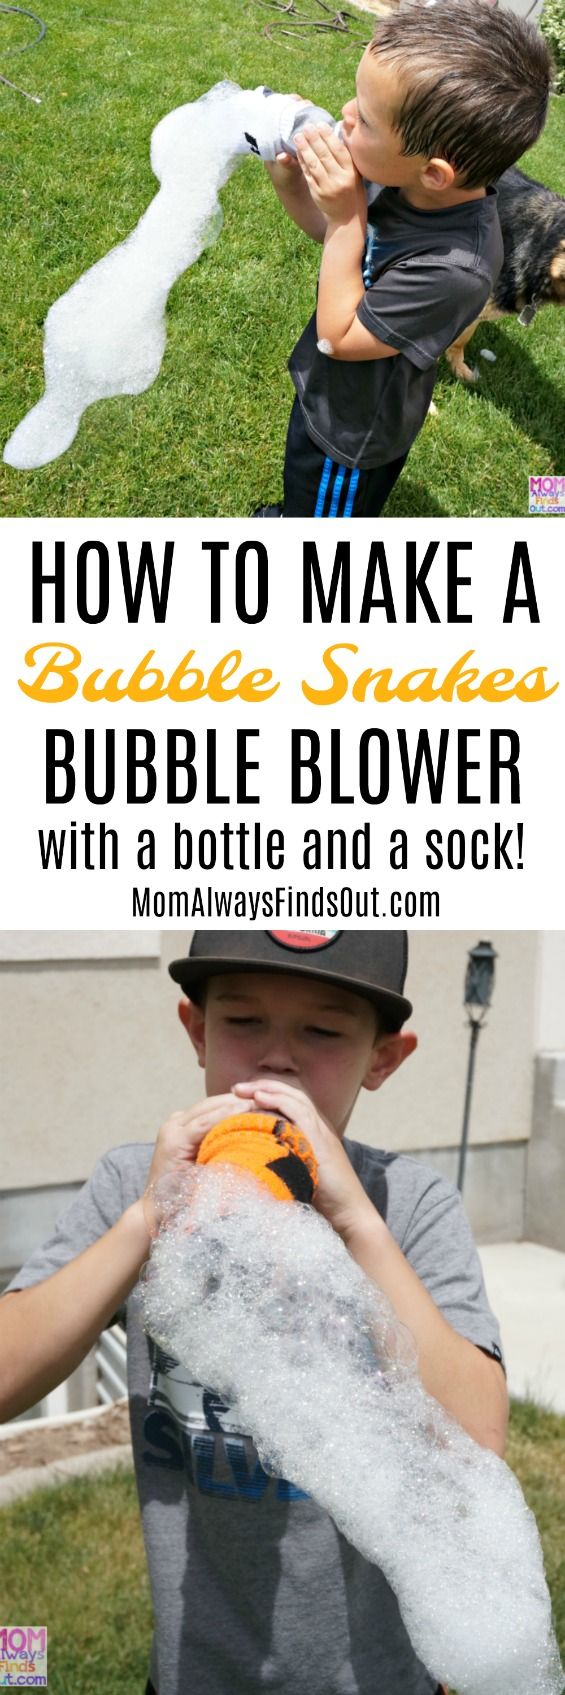 Best 25 bubble activities ideas on pinterest bubble for How to make a bubble blower from a water bottle